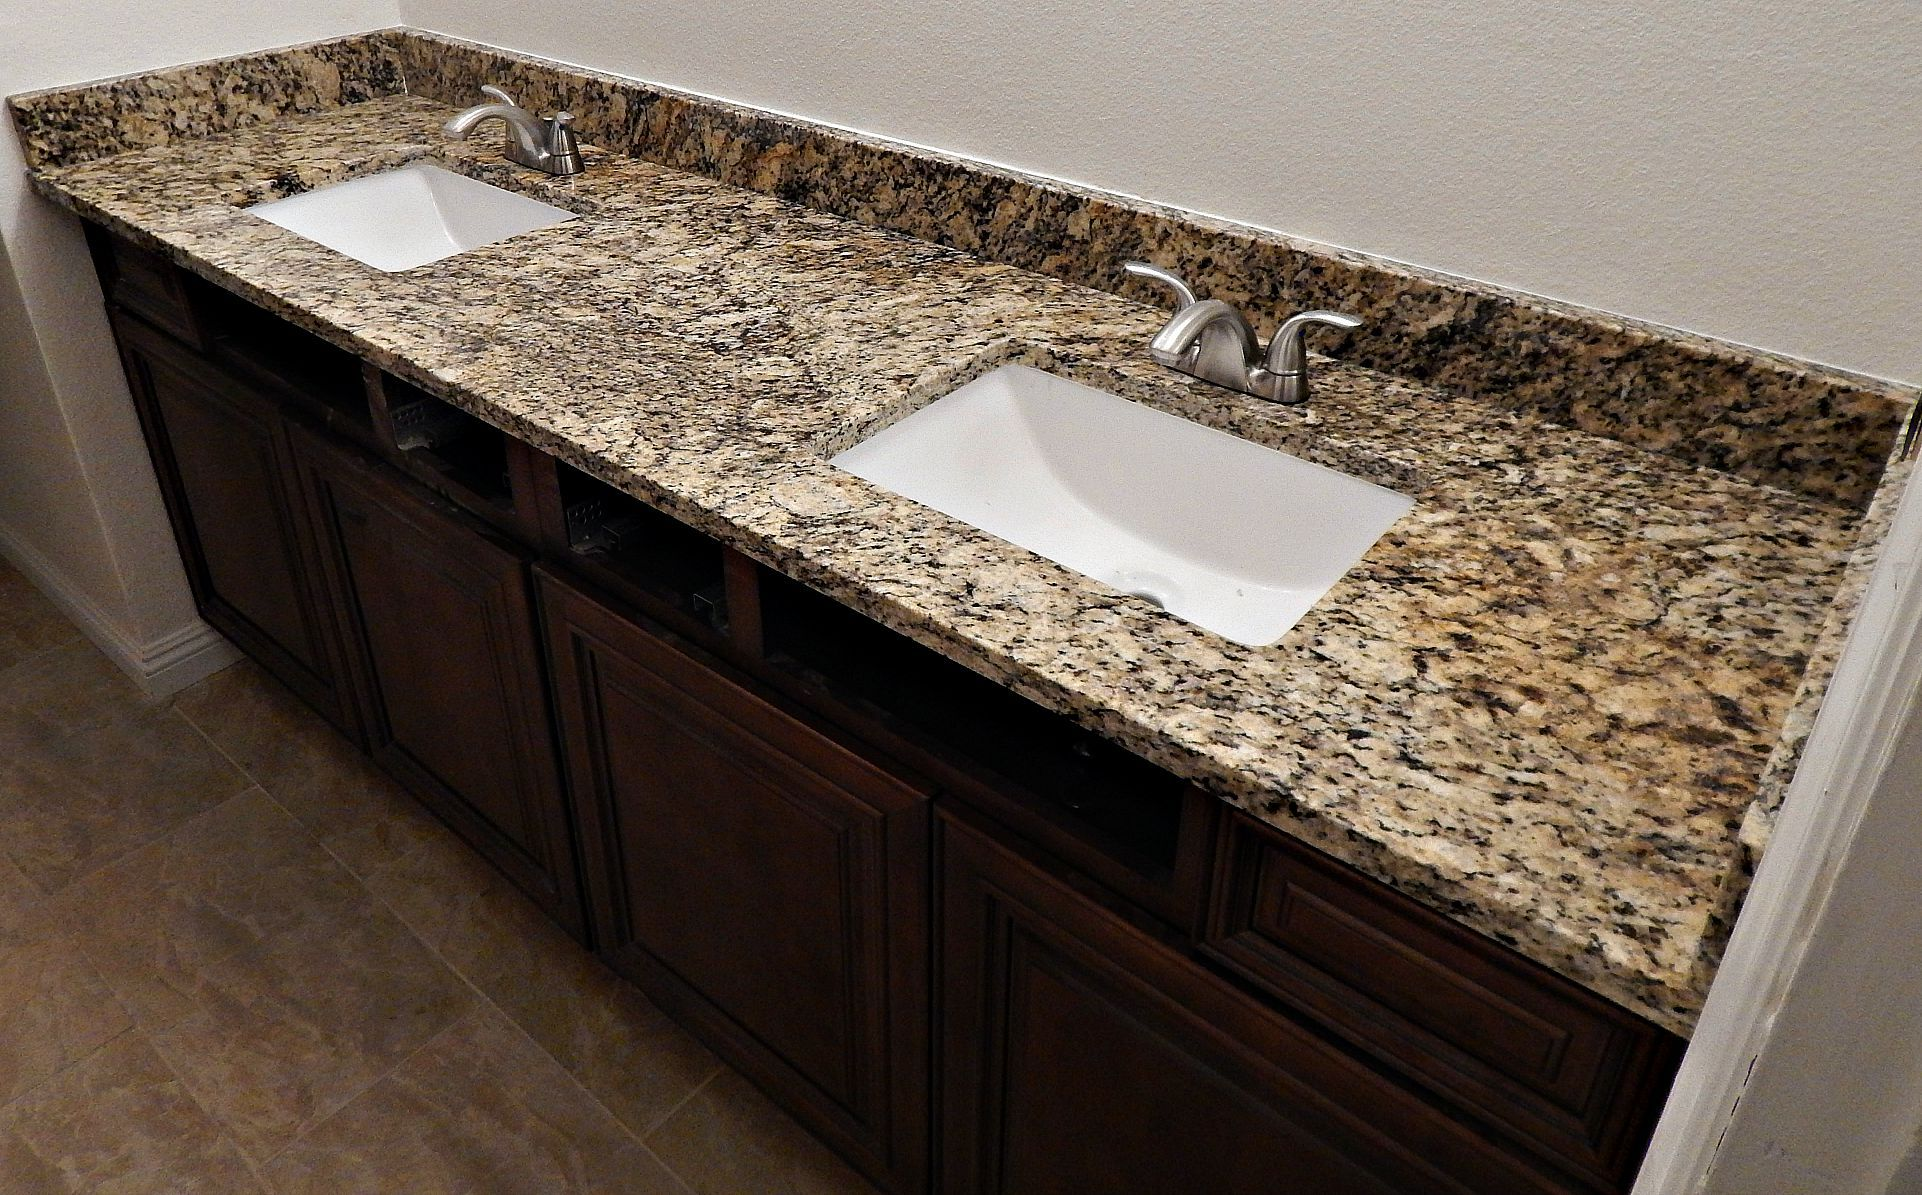 How To Polish Bathroom Countertops Bathroom Granite Countertop Pictures Granite Bathroom